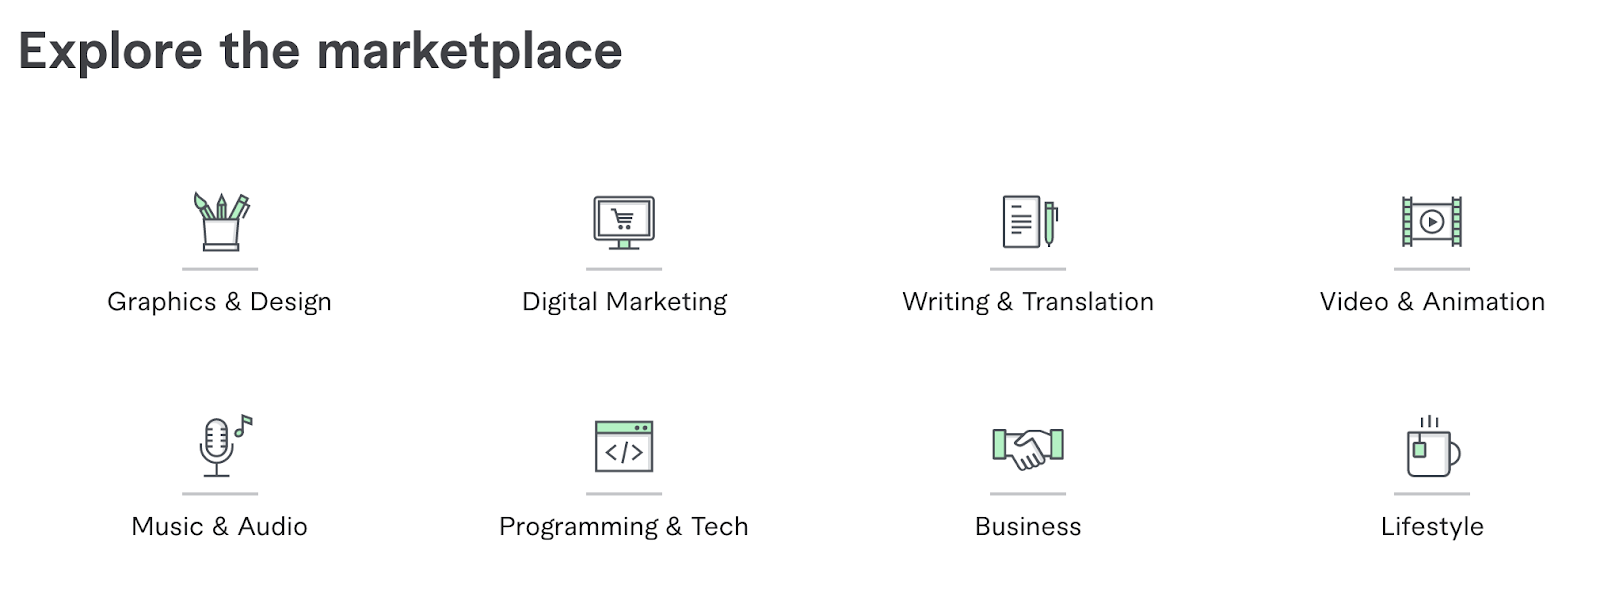 What type of work is available for each freelance marketplace?